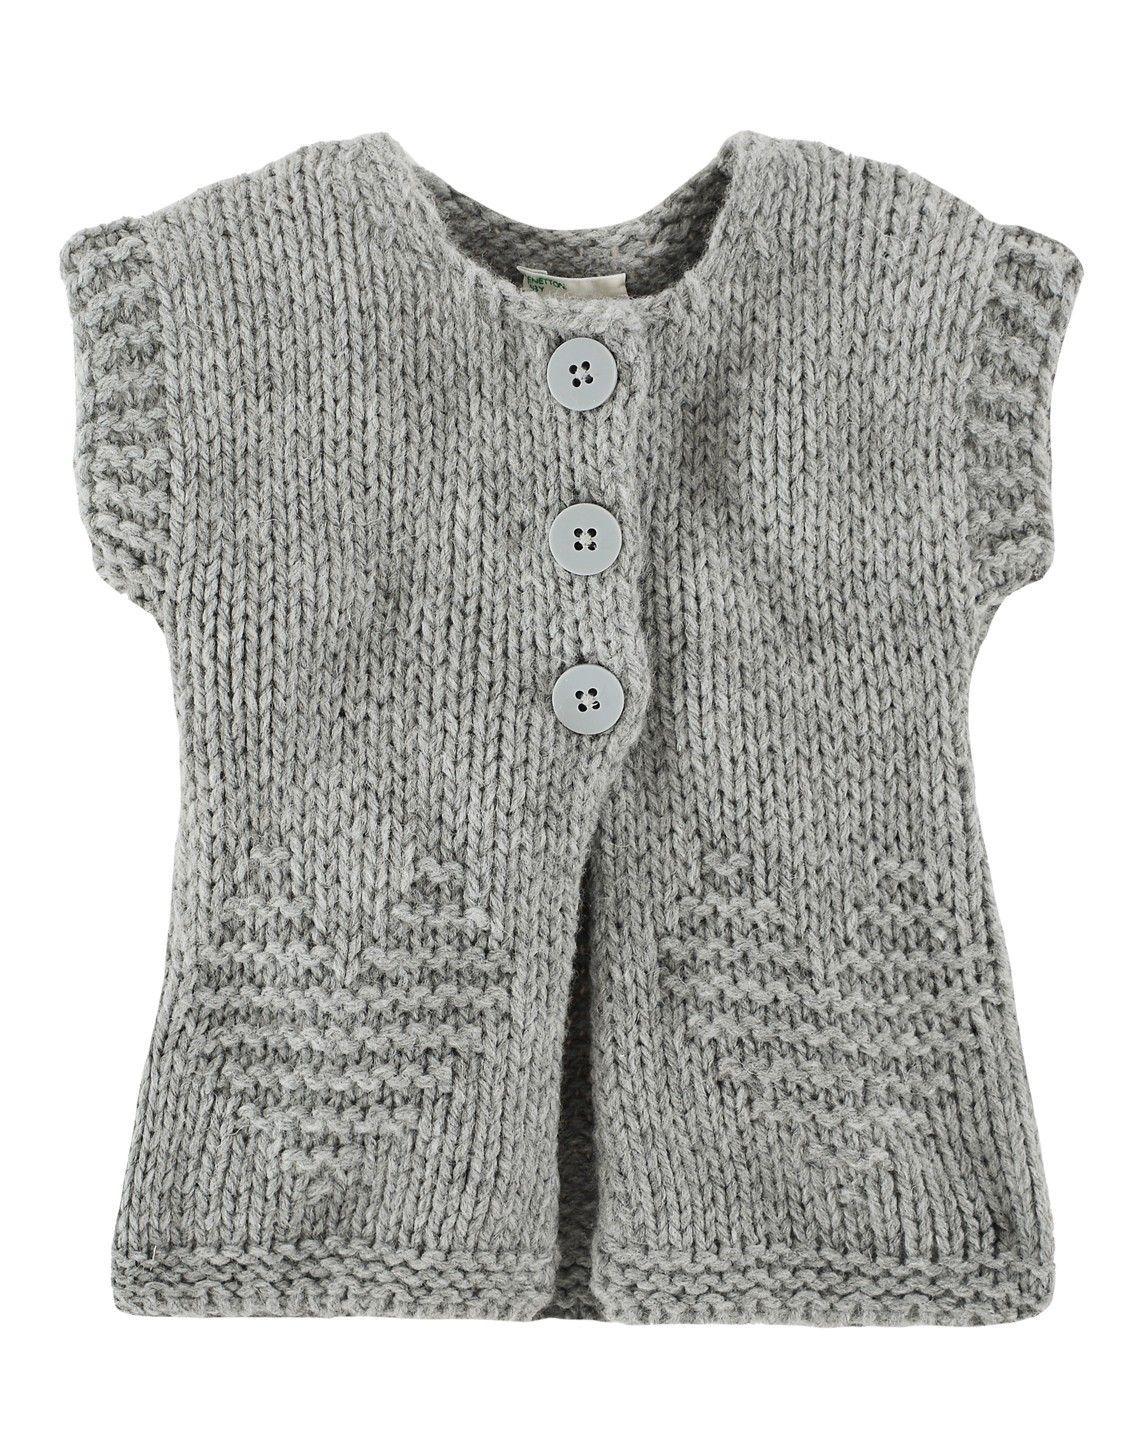 Kinder Weste Cardigan United Colors Of Benetton Galeri Stricken